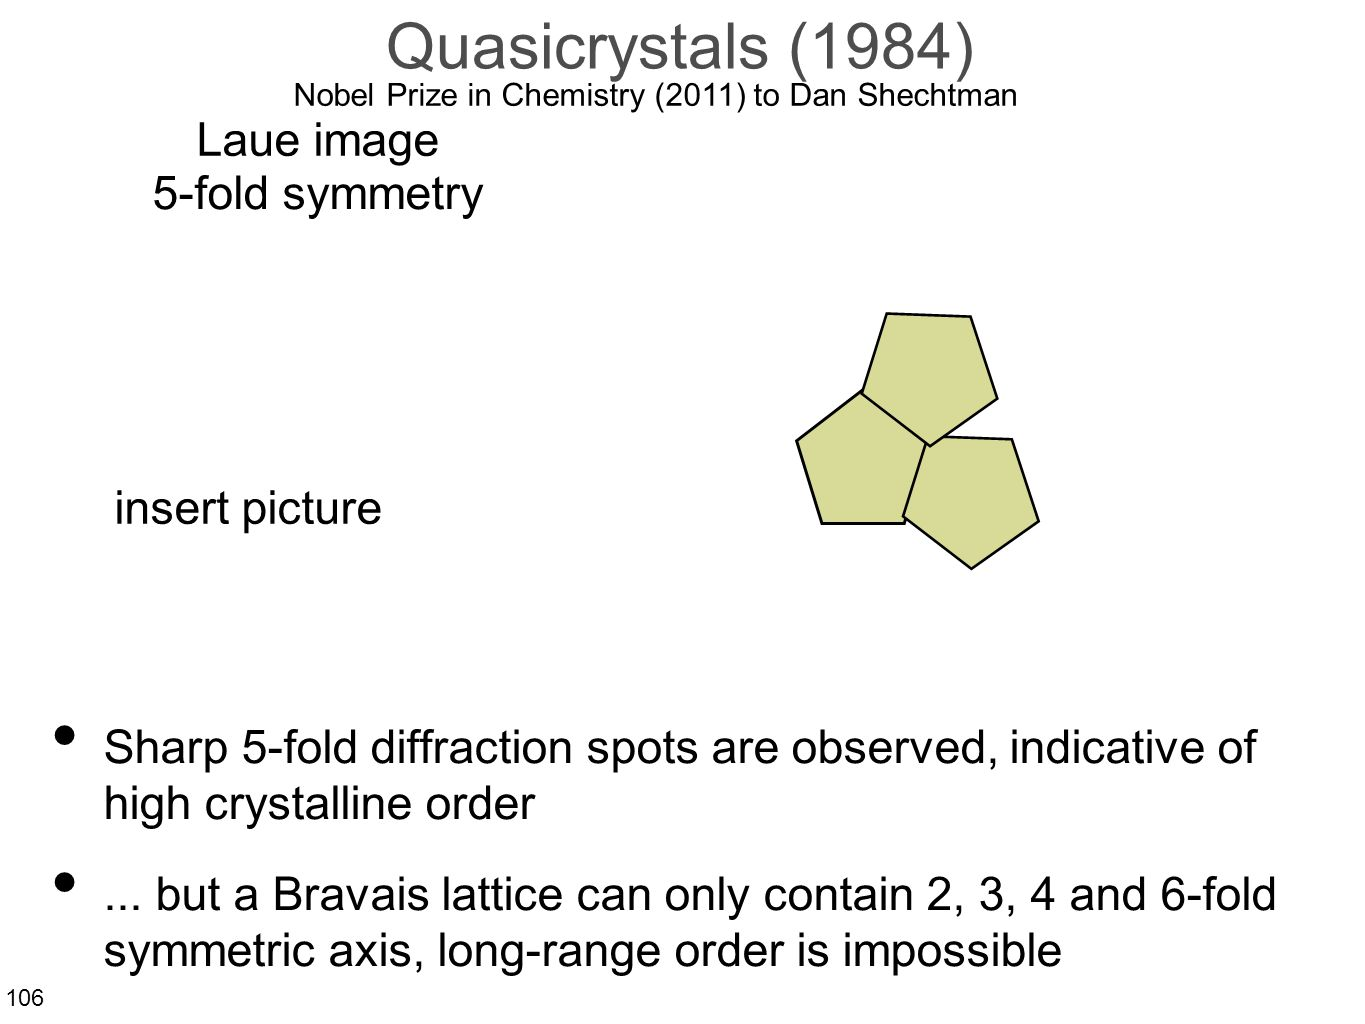 106 Quasicrystals (1984) Sharp 5-fold diffraction spots are observed, indicative of high crystalline order...